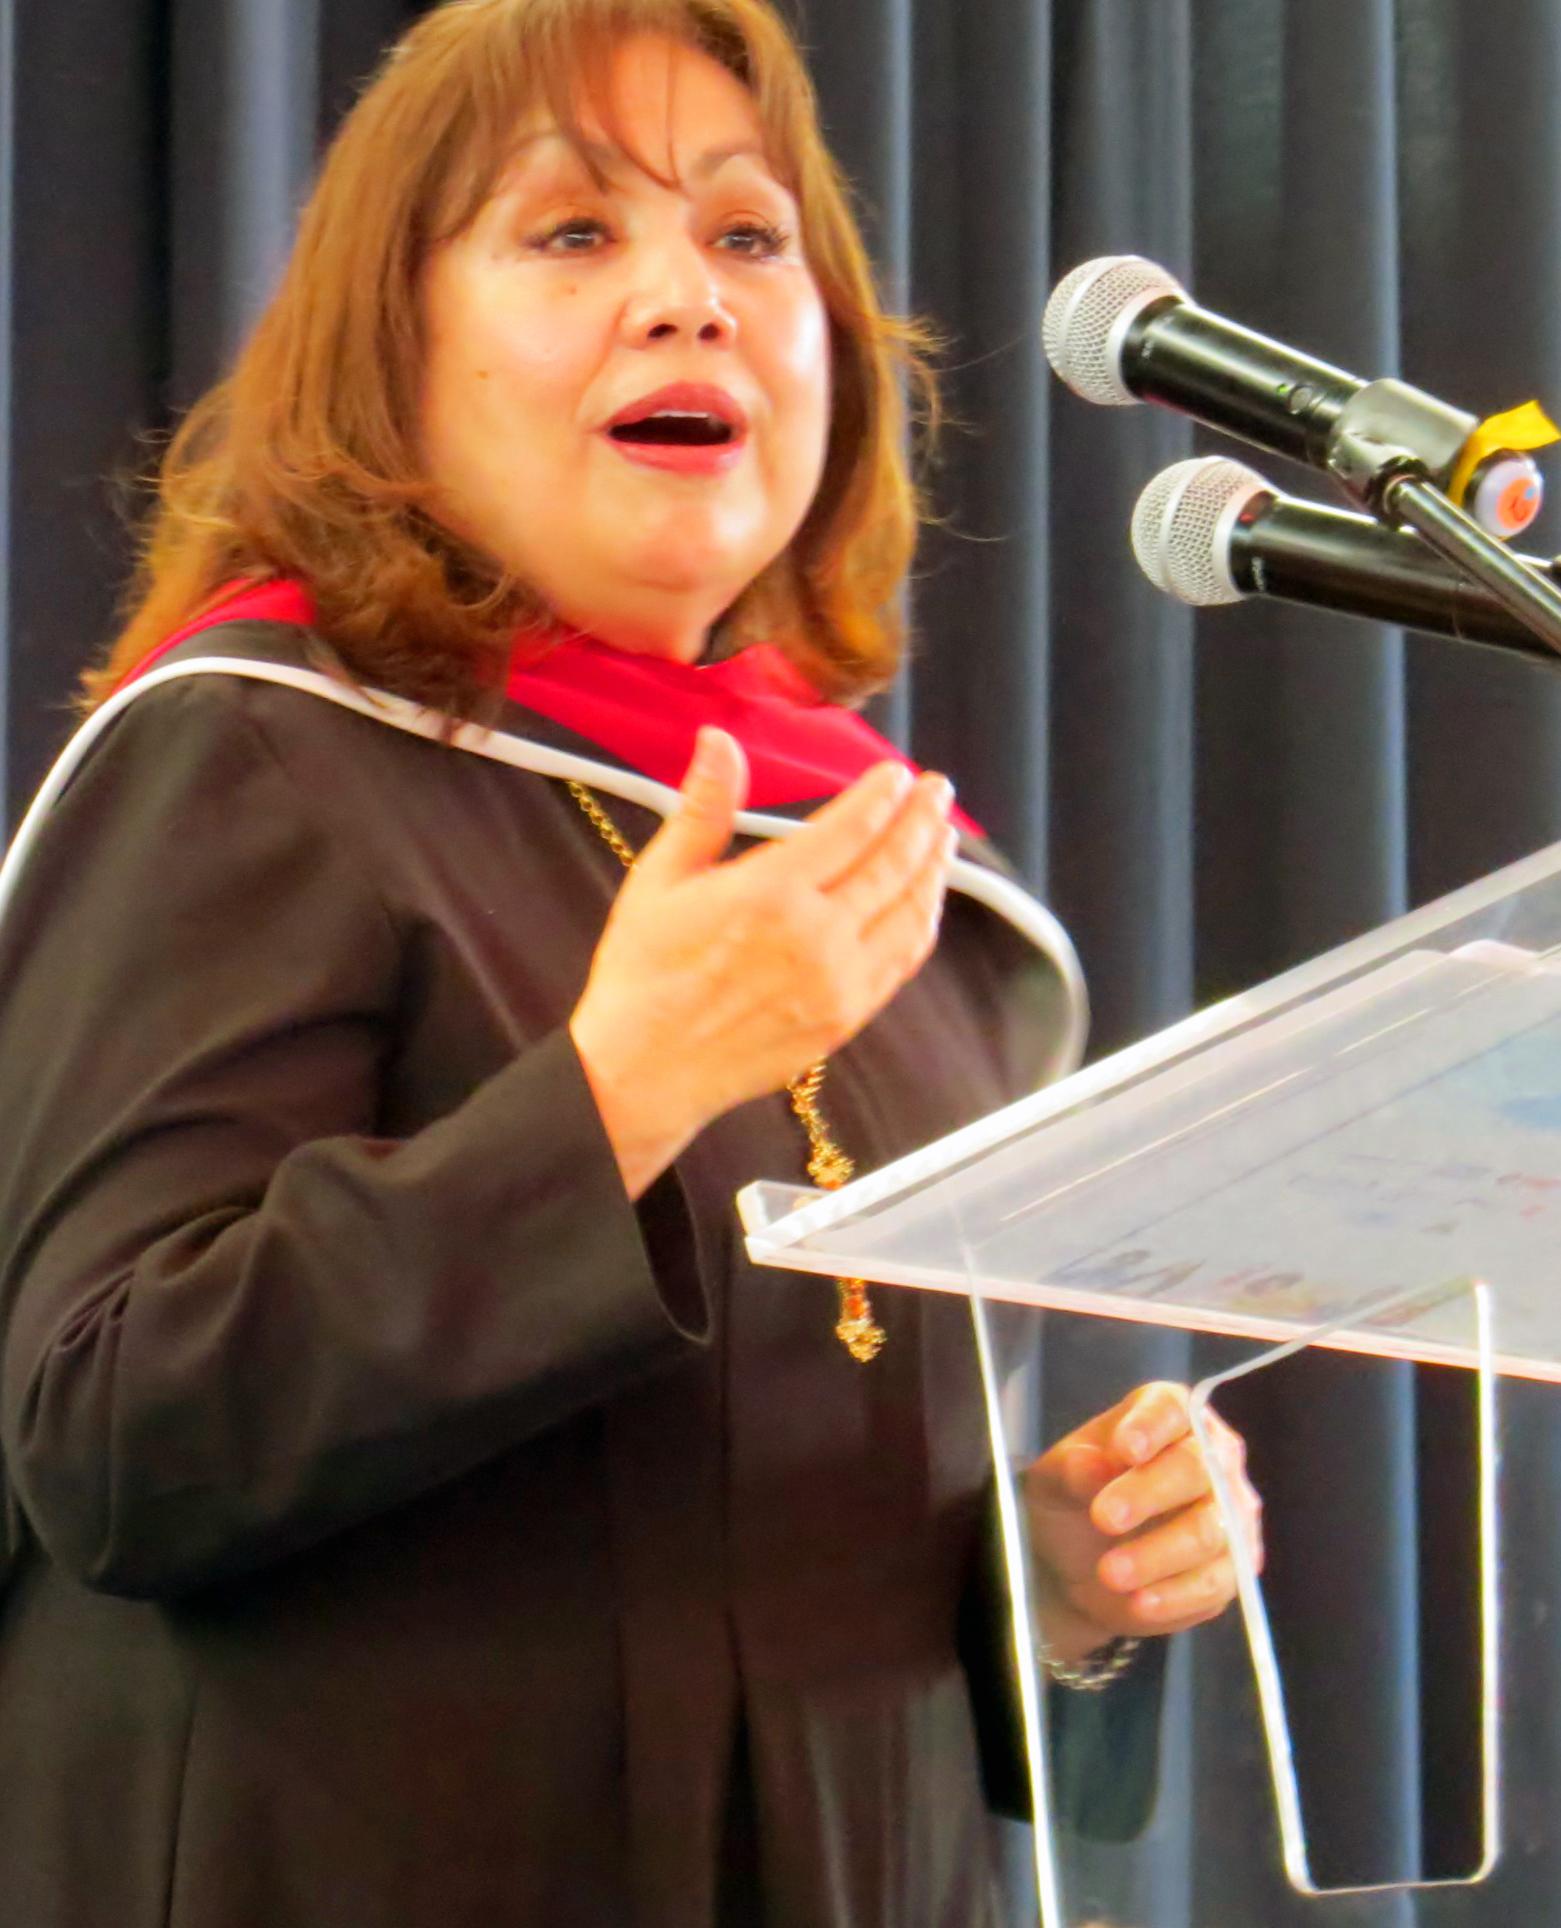 United Methodist Bishop Minerva Carcaño gives the May 28 keynote address for the International Association of Methodist-related Schools, Colleges and Universities conference in Puebla, Mexico. Her speech challenging Christians to be more active on immigration issues drew coverage in the Puebla press. Photo by Sam Hodges, UMNS.